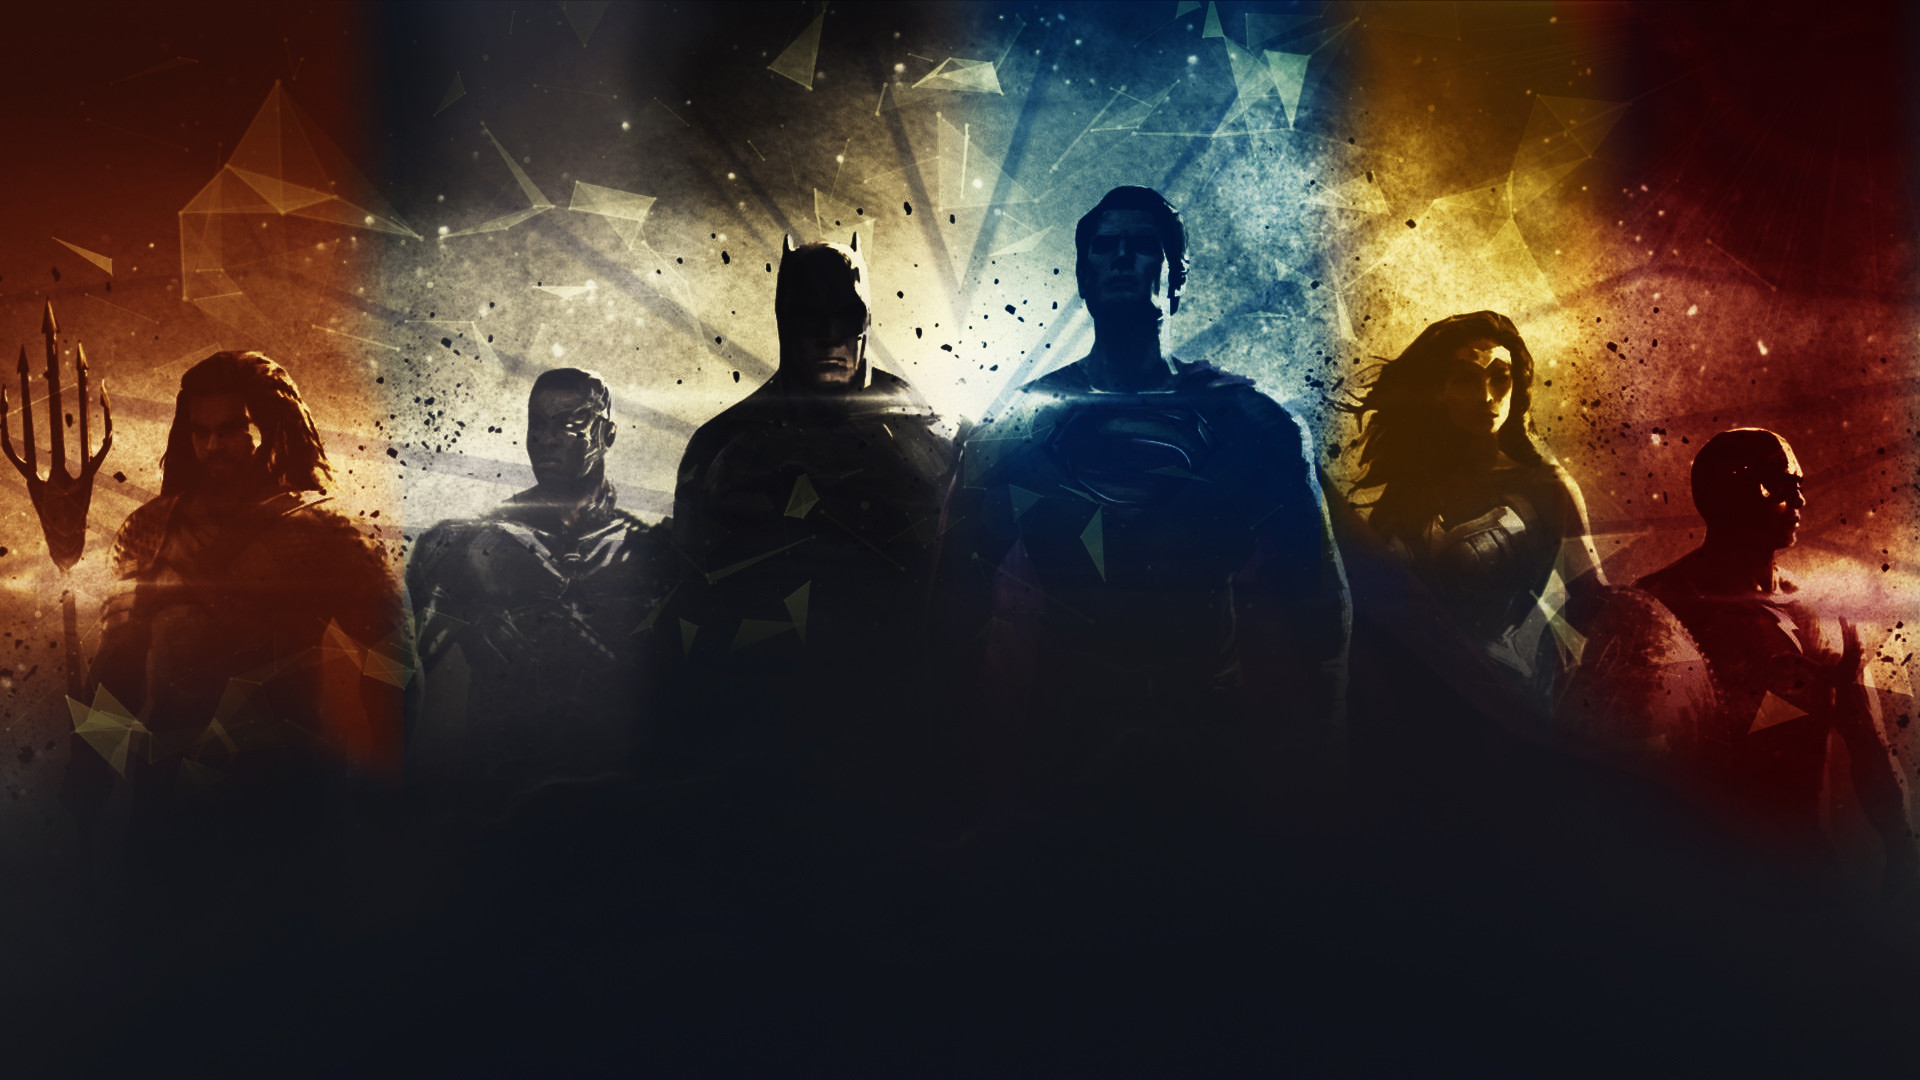 1920x1080 The Dawn of the Justice League Wallpaper